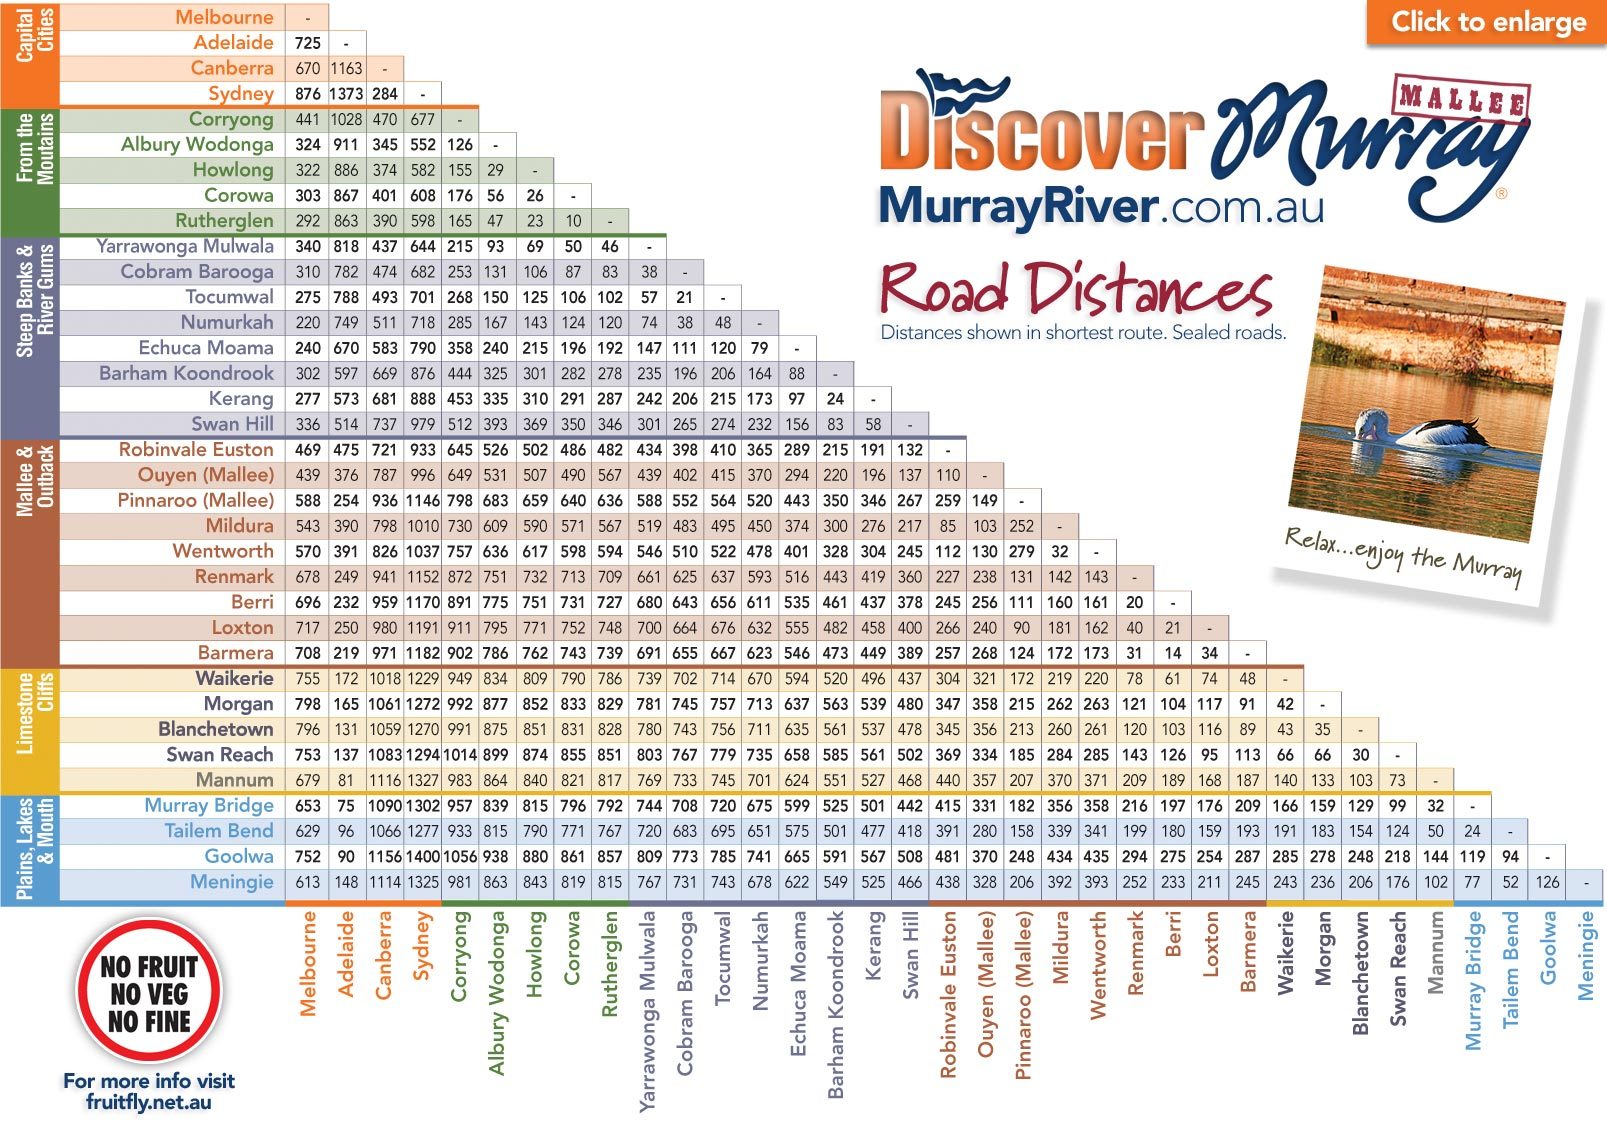 Murray River Amp Mallee Road Distances In Kilometres